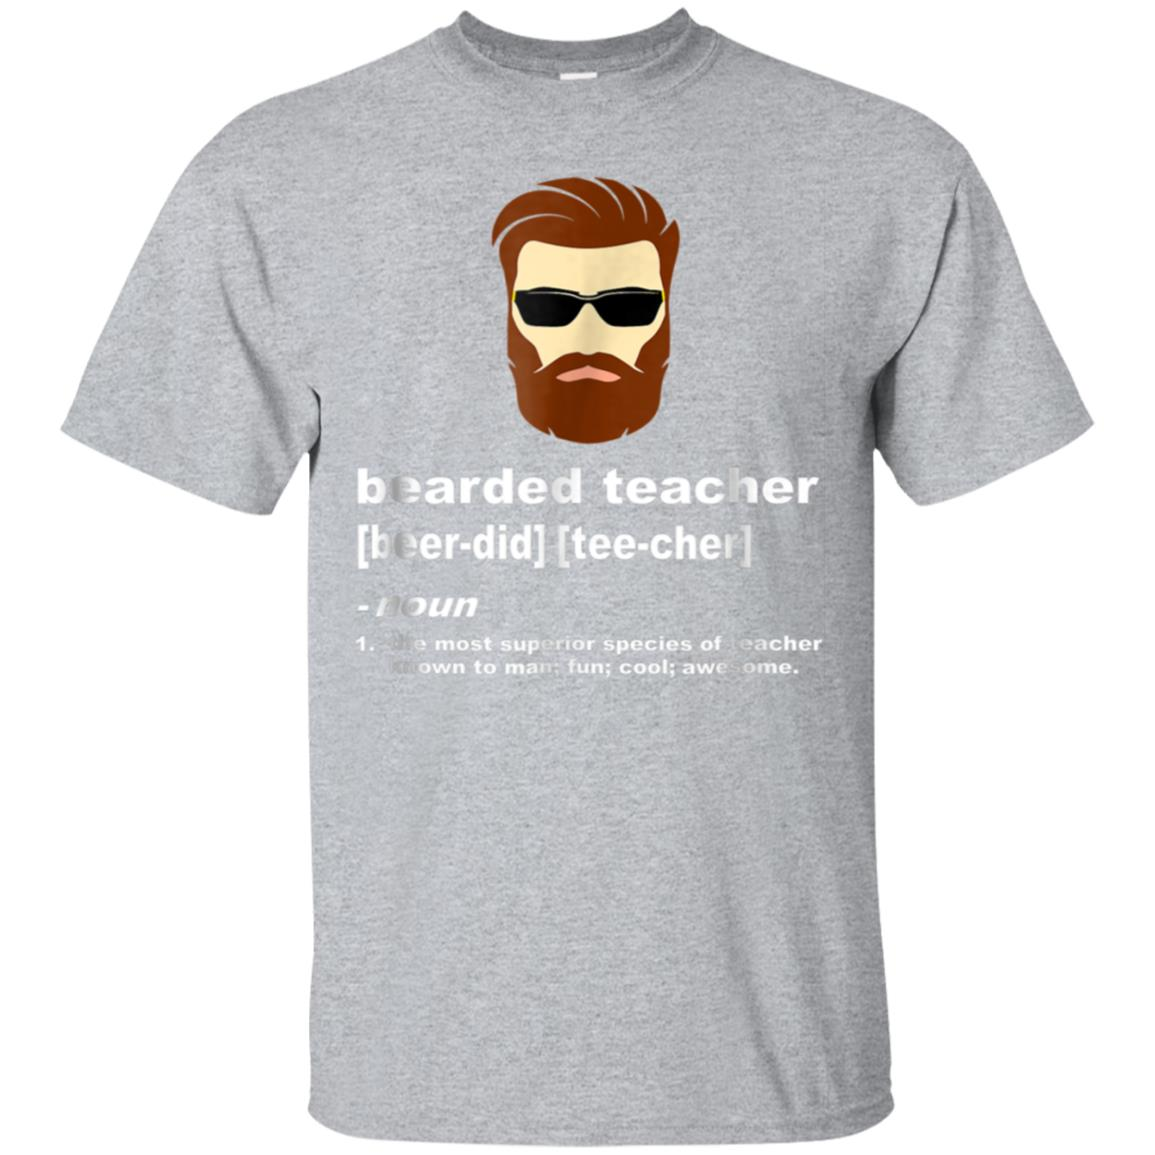 funny beard teacher shirt